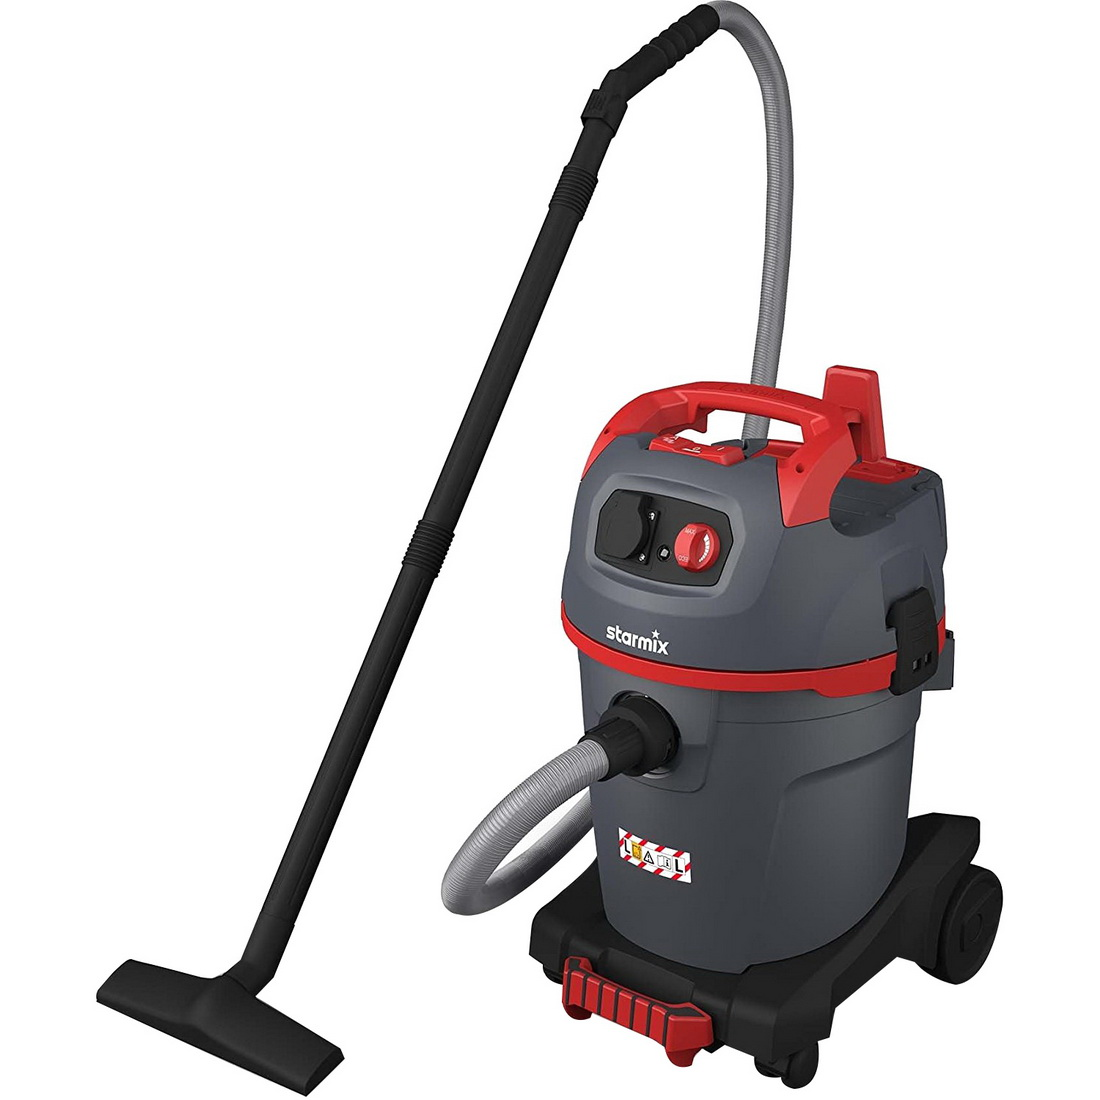 1400W 35L Plastic Wet/Dry Drywall Dust Extractor